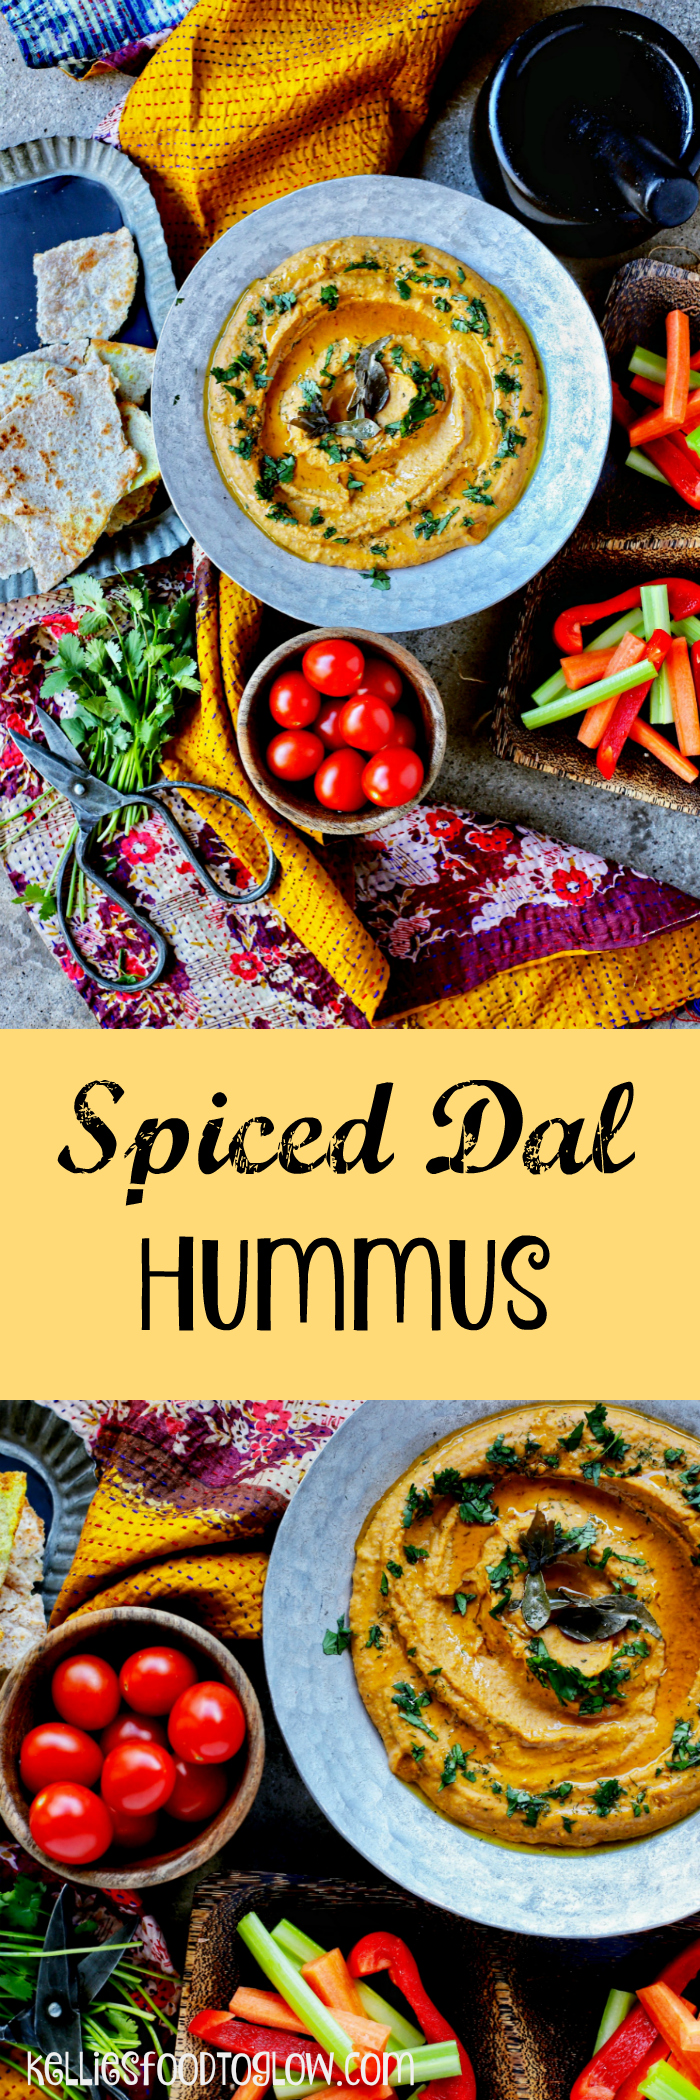 Spice up your #hummus game with #Indian spices and lentils to make #dal #hummus. most perfect dip and spread for #healthy, #vegan, #snacks and #lunches. Spread this dip on wraps or use it to plunge in fresh vegetables and bread.